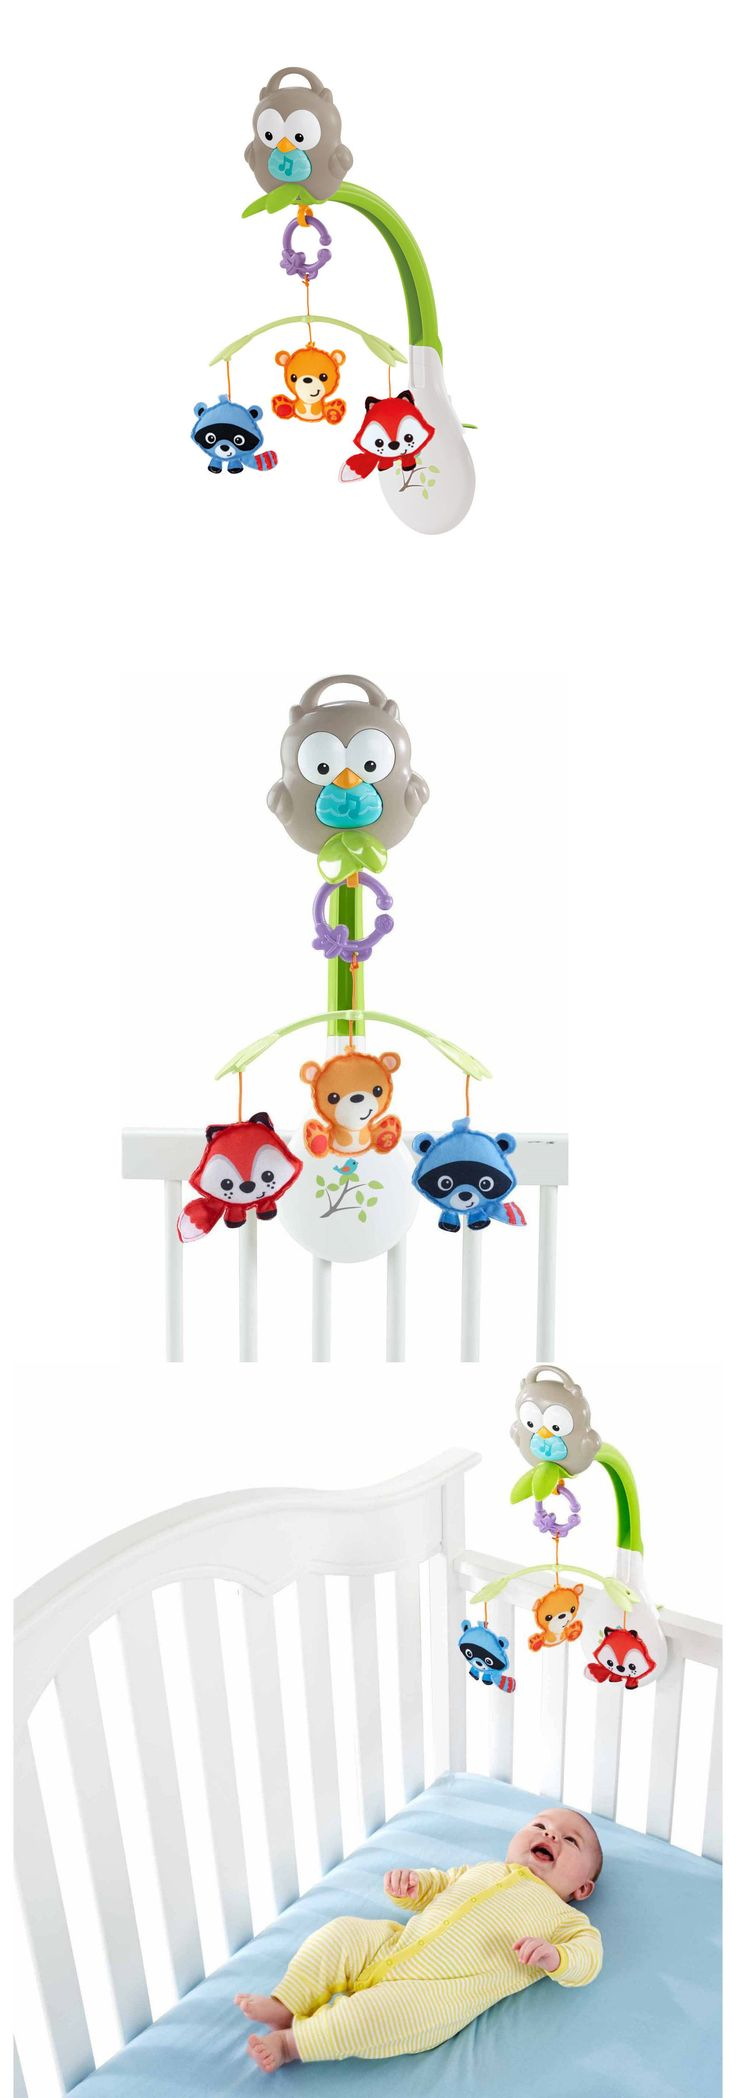 Crib Toys 100226: Fisher Price 3 In 1 Musical Mobile Motorized Crib Woodland Friends Carry Handle -> BUY IT NOW ONLY: $39.87 on eBay!